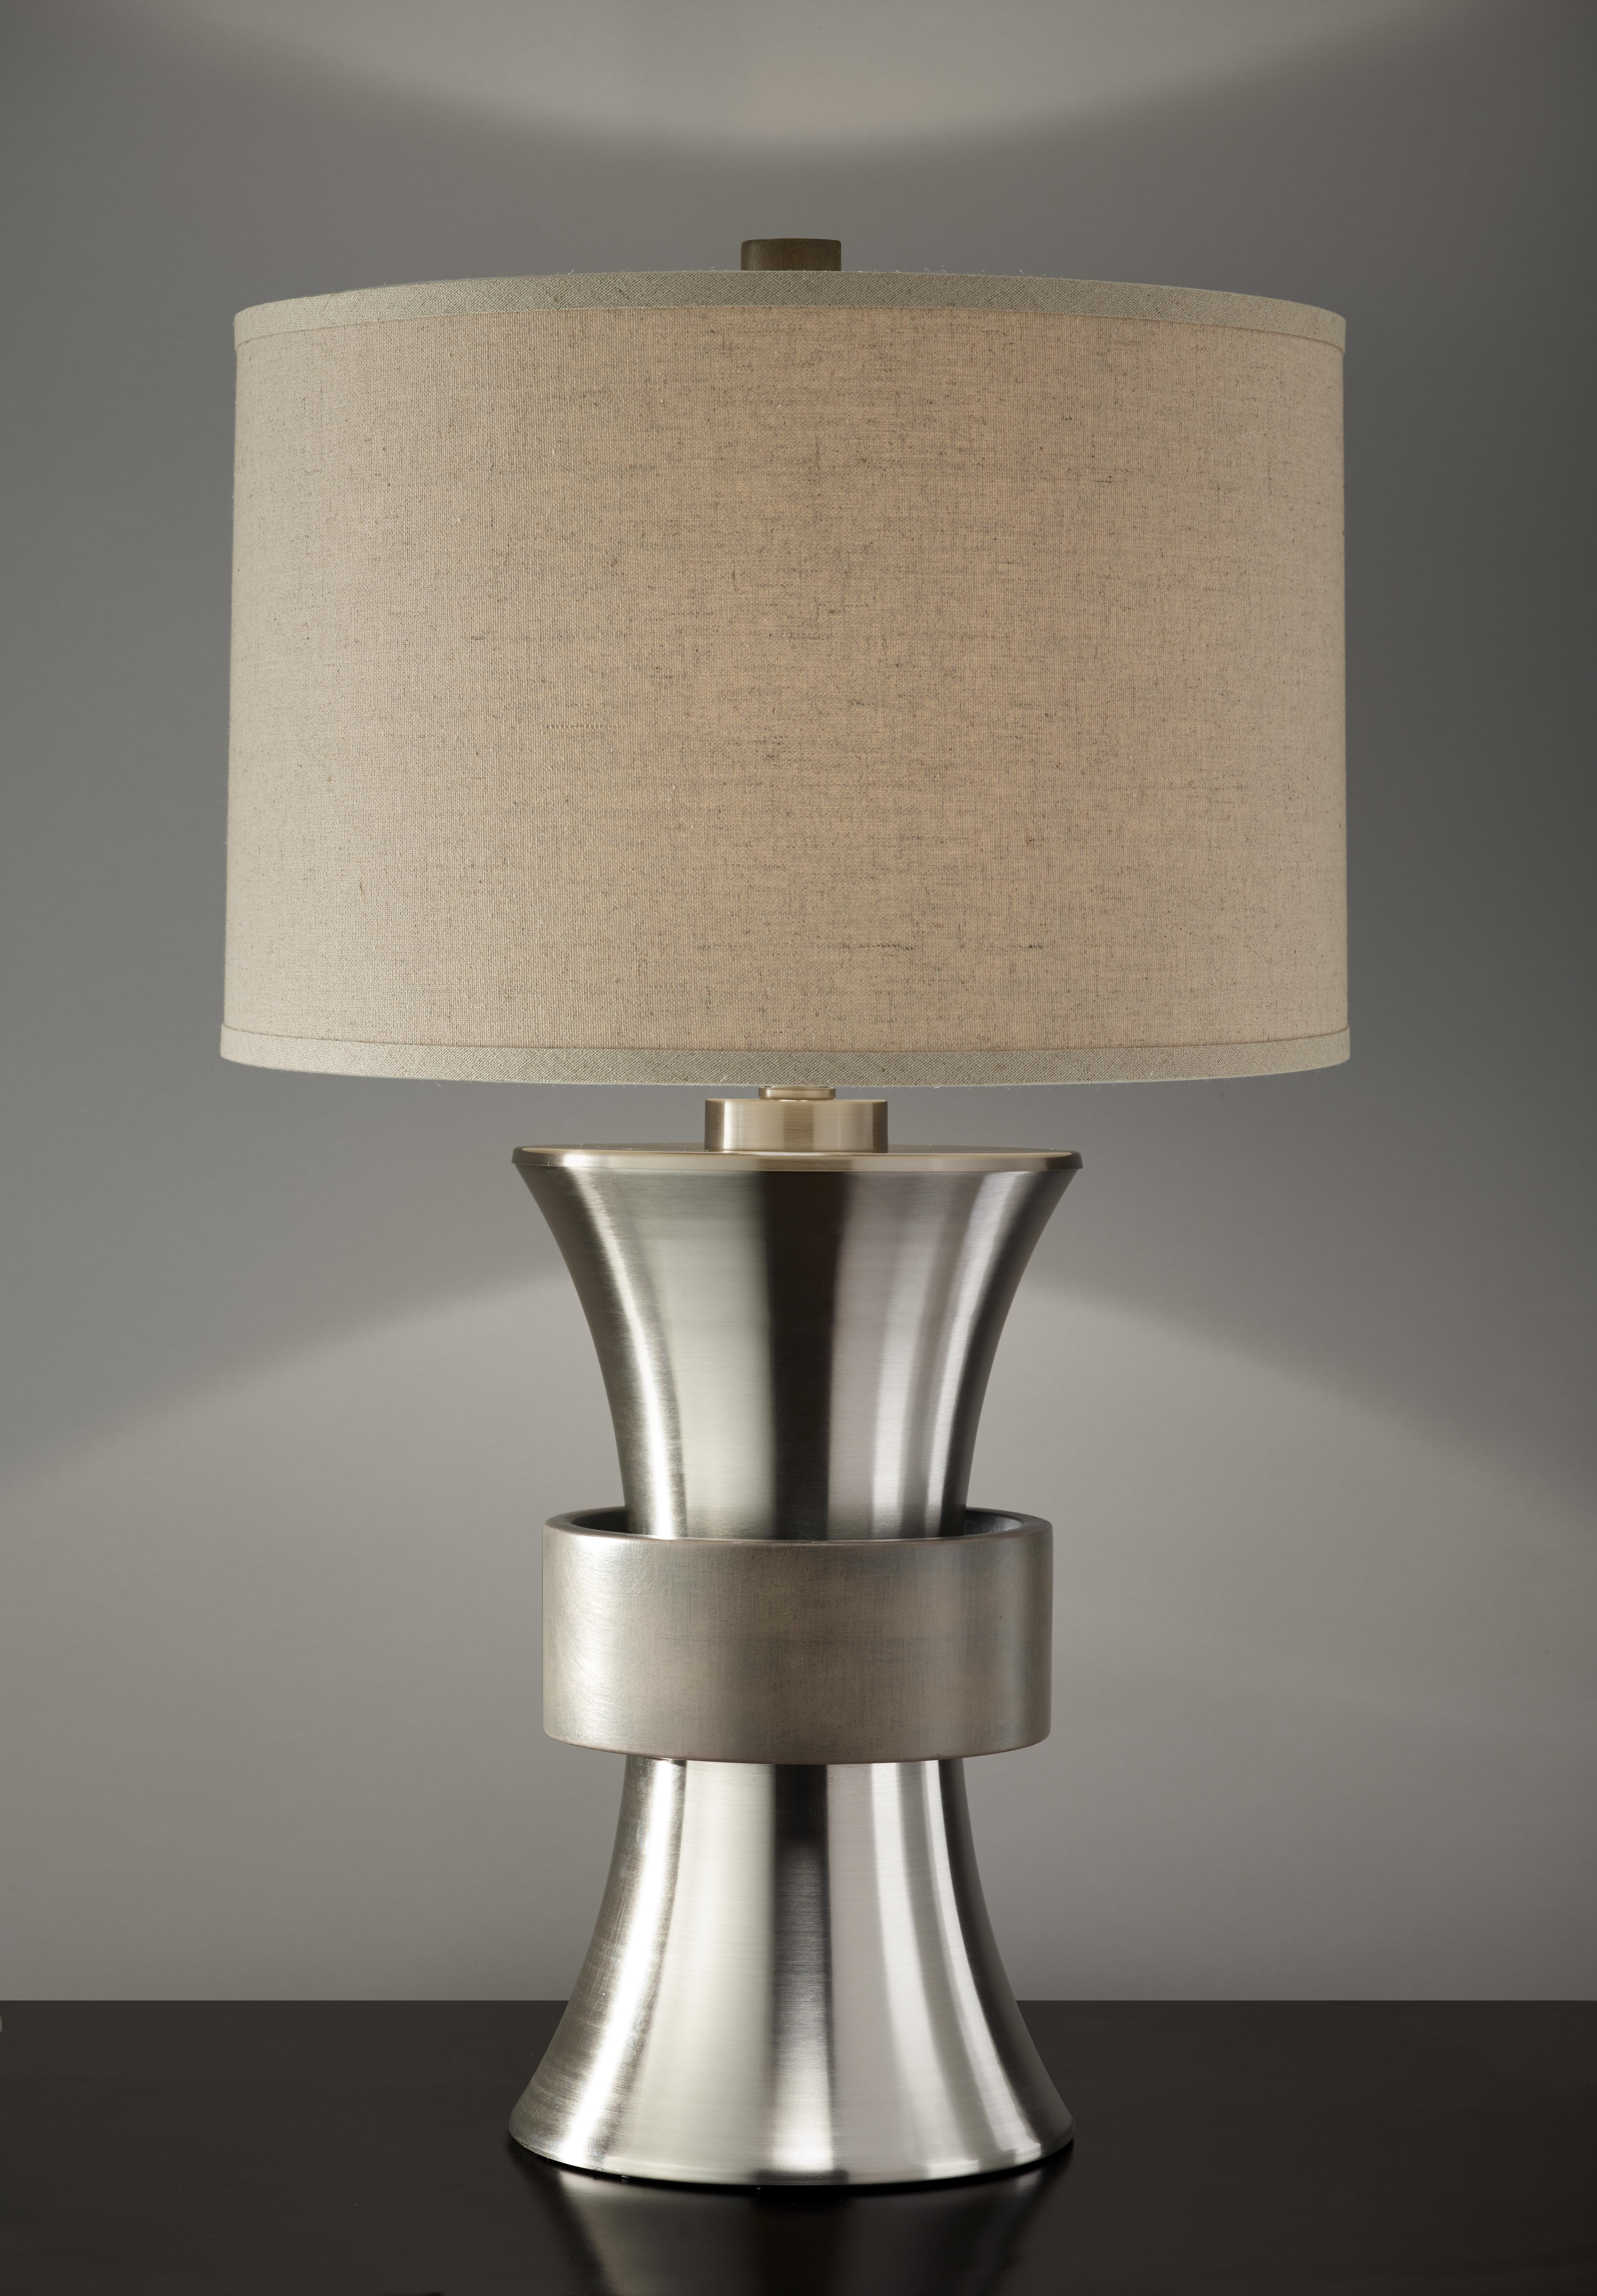 Feiss to debut new lamps and mirrors at spring high point market the new laurie table lamp by feiss aloadofball Images